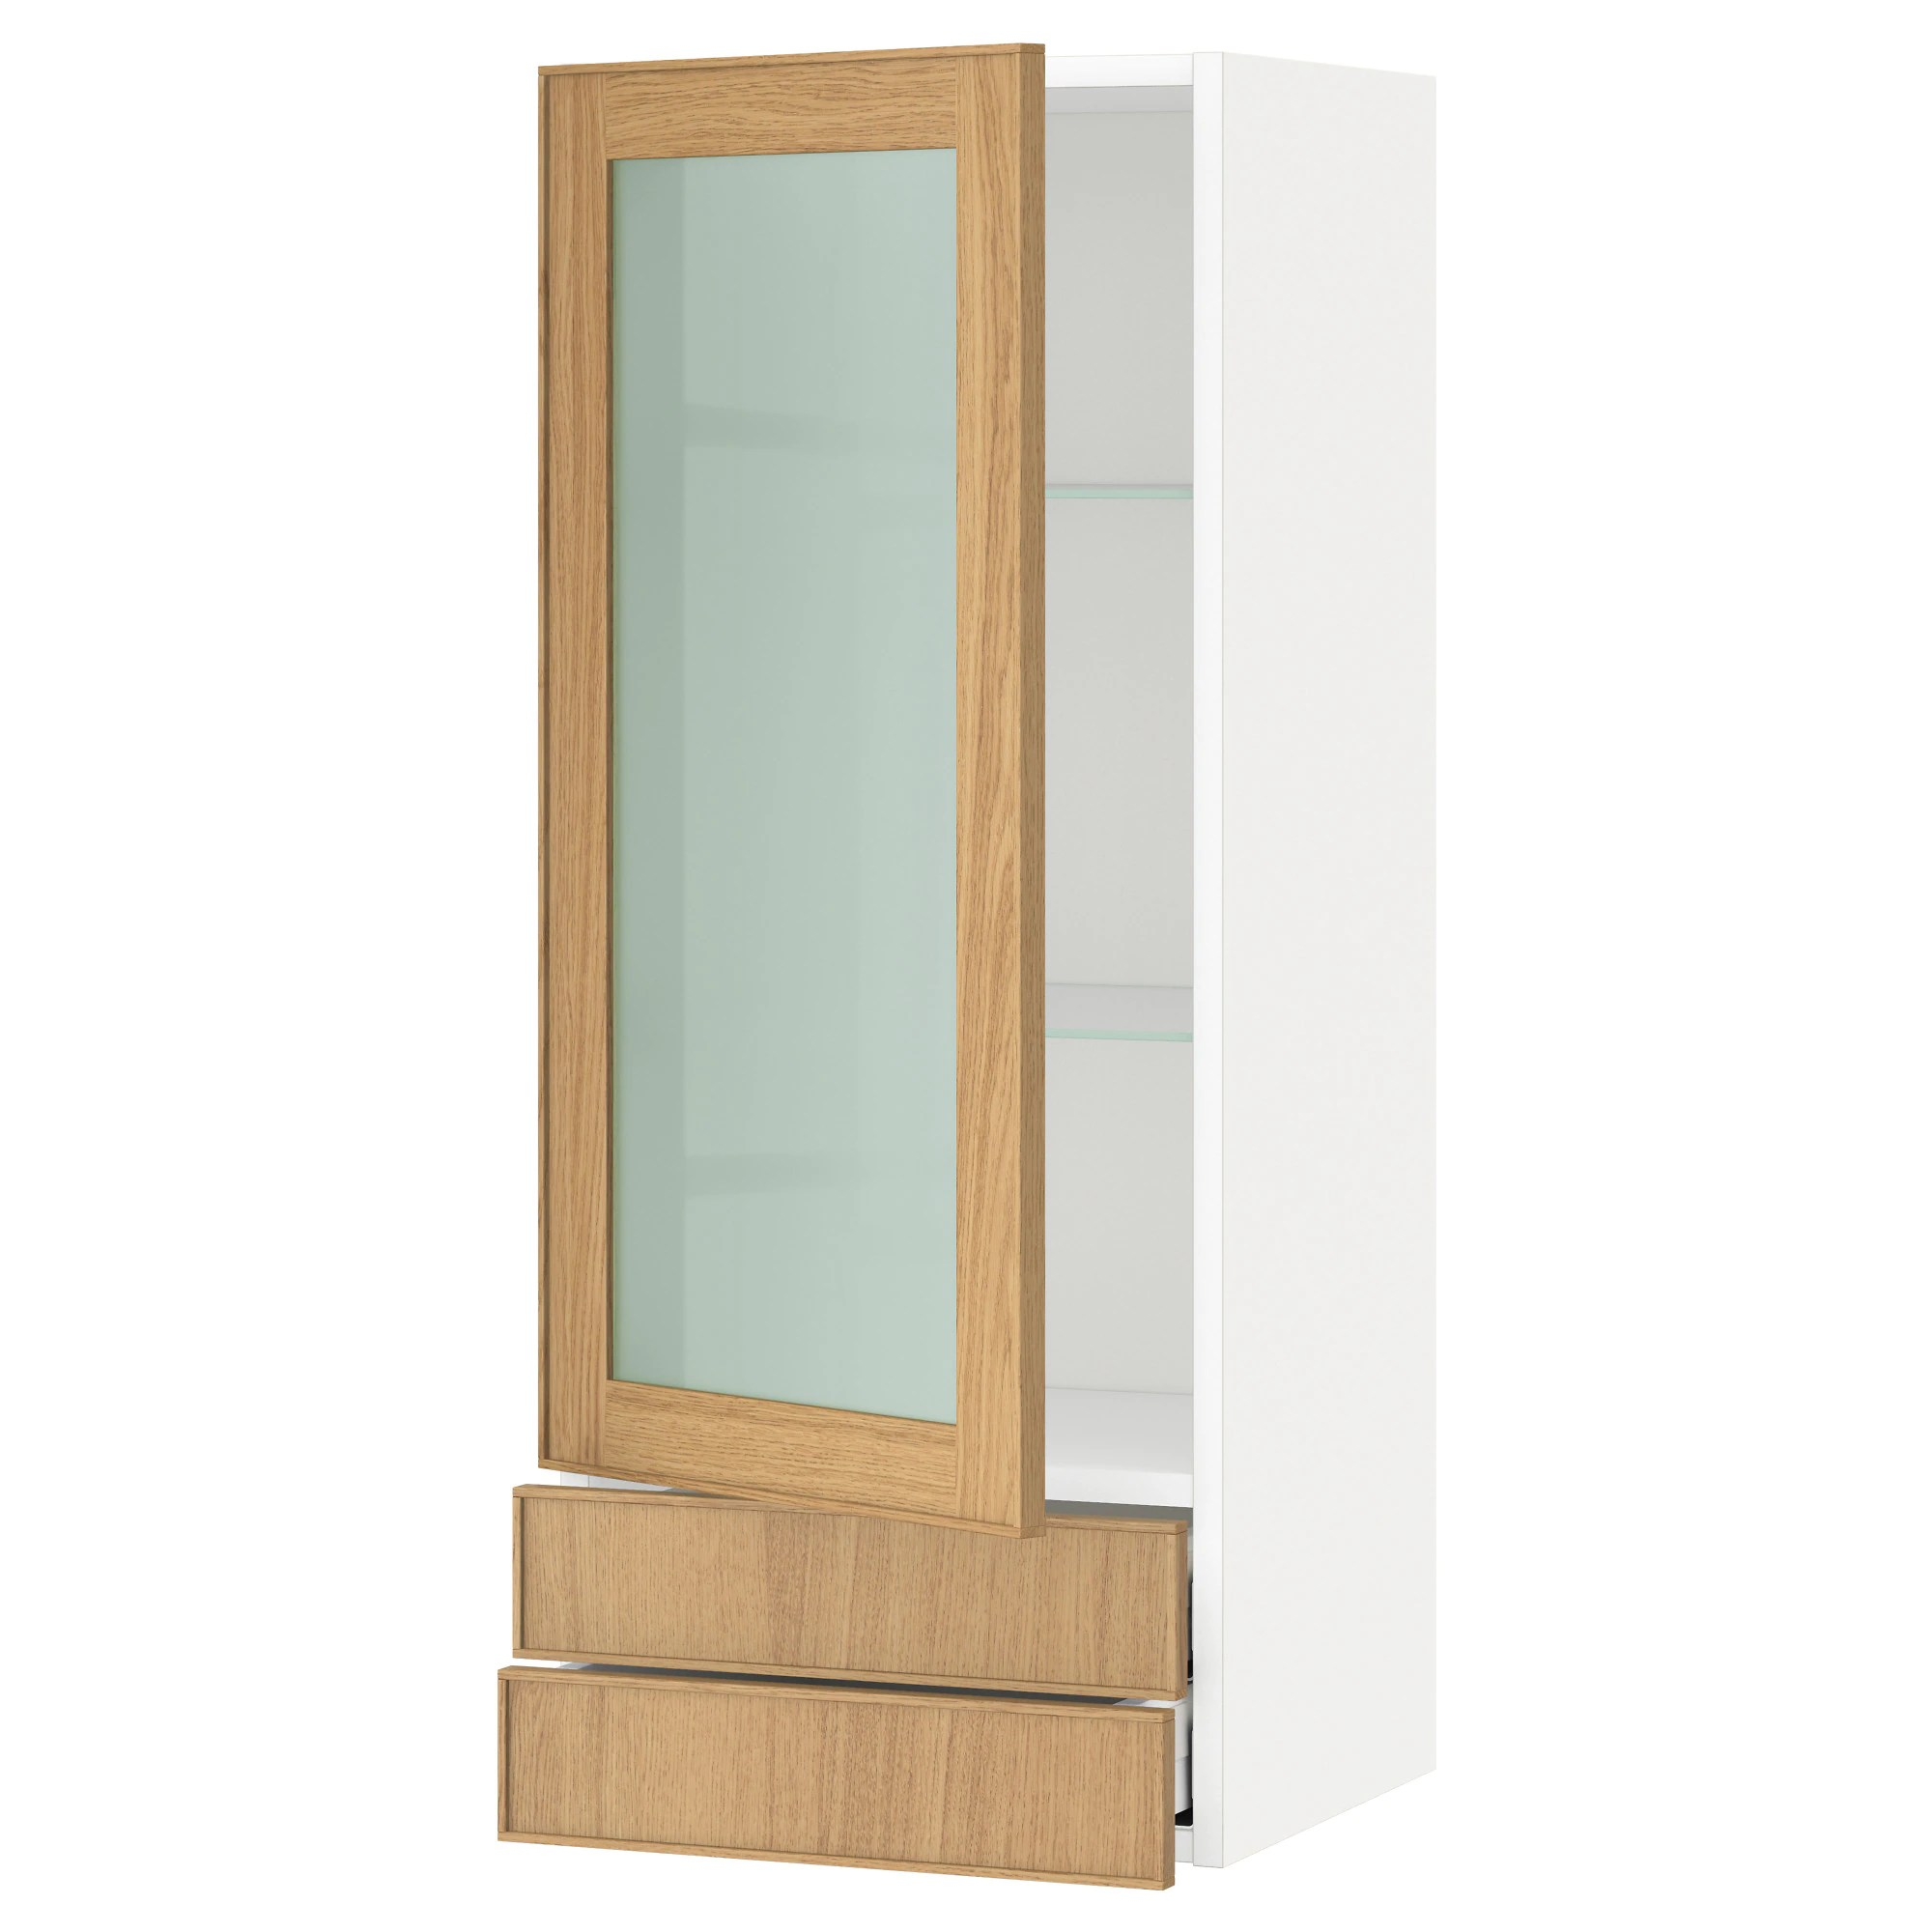 Ikea Küche Metod Maximera Metod Maximera Wall Cabinet W Glass Door 2 Drawers White Edserum Brown